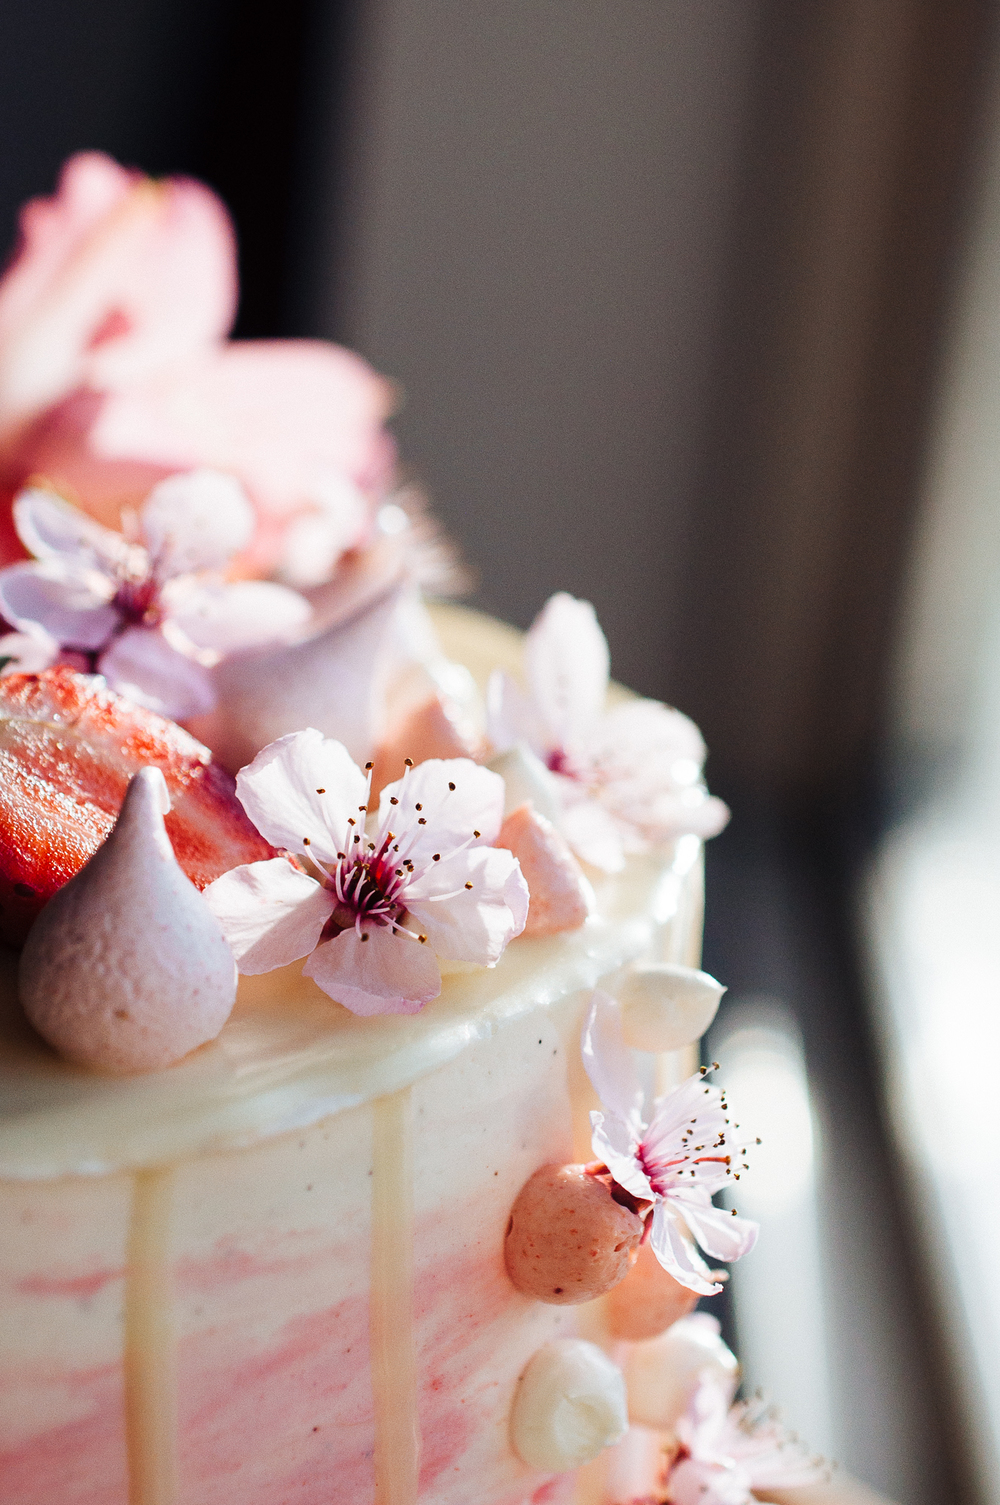 Strawberry and vanilla cake 24.jpg